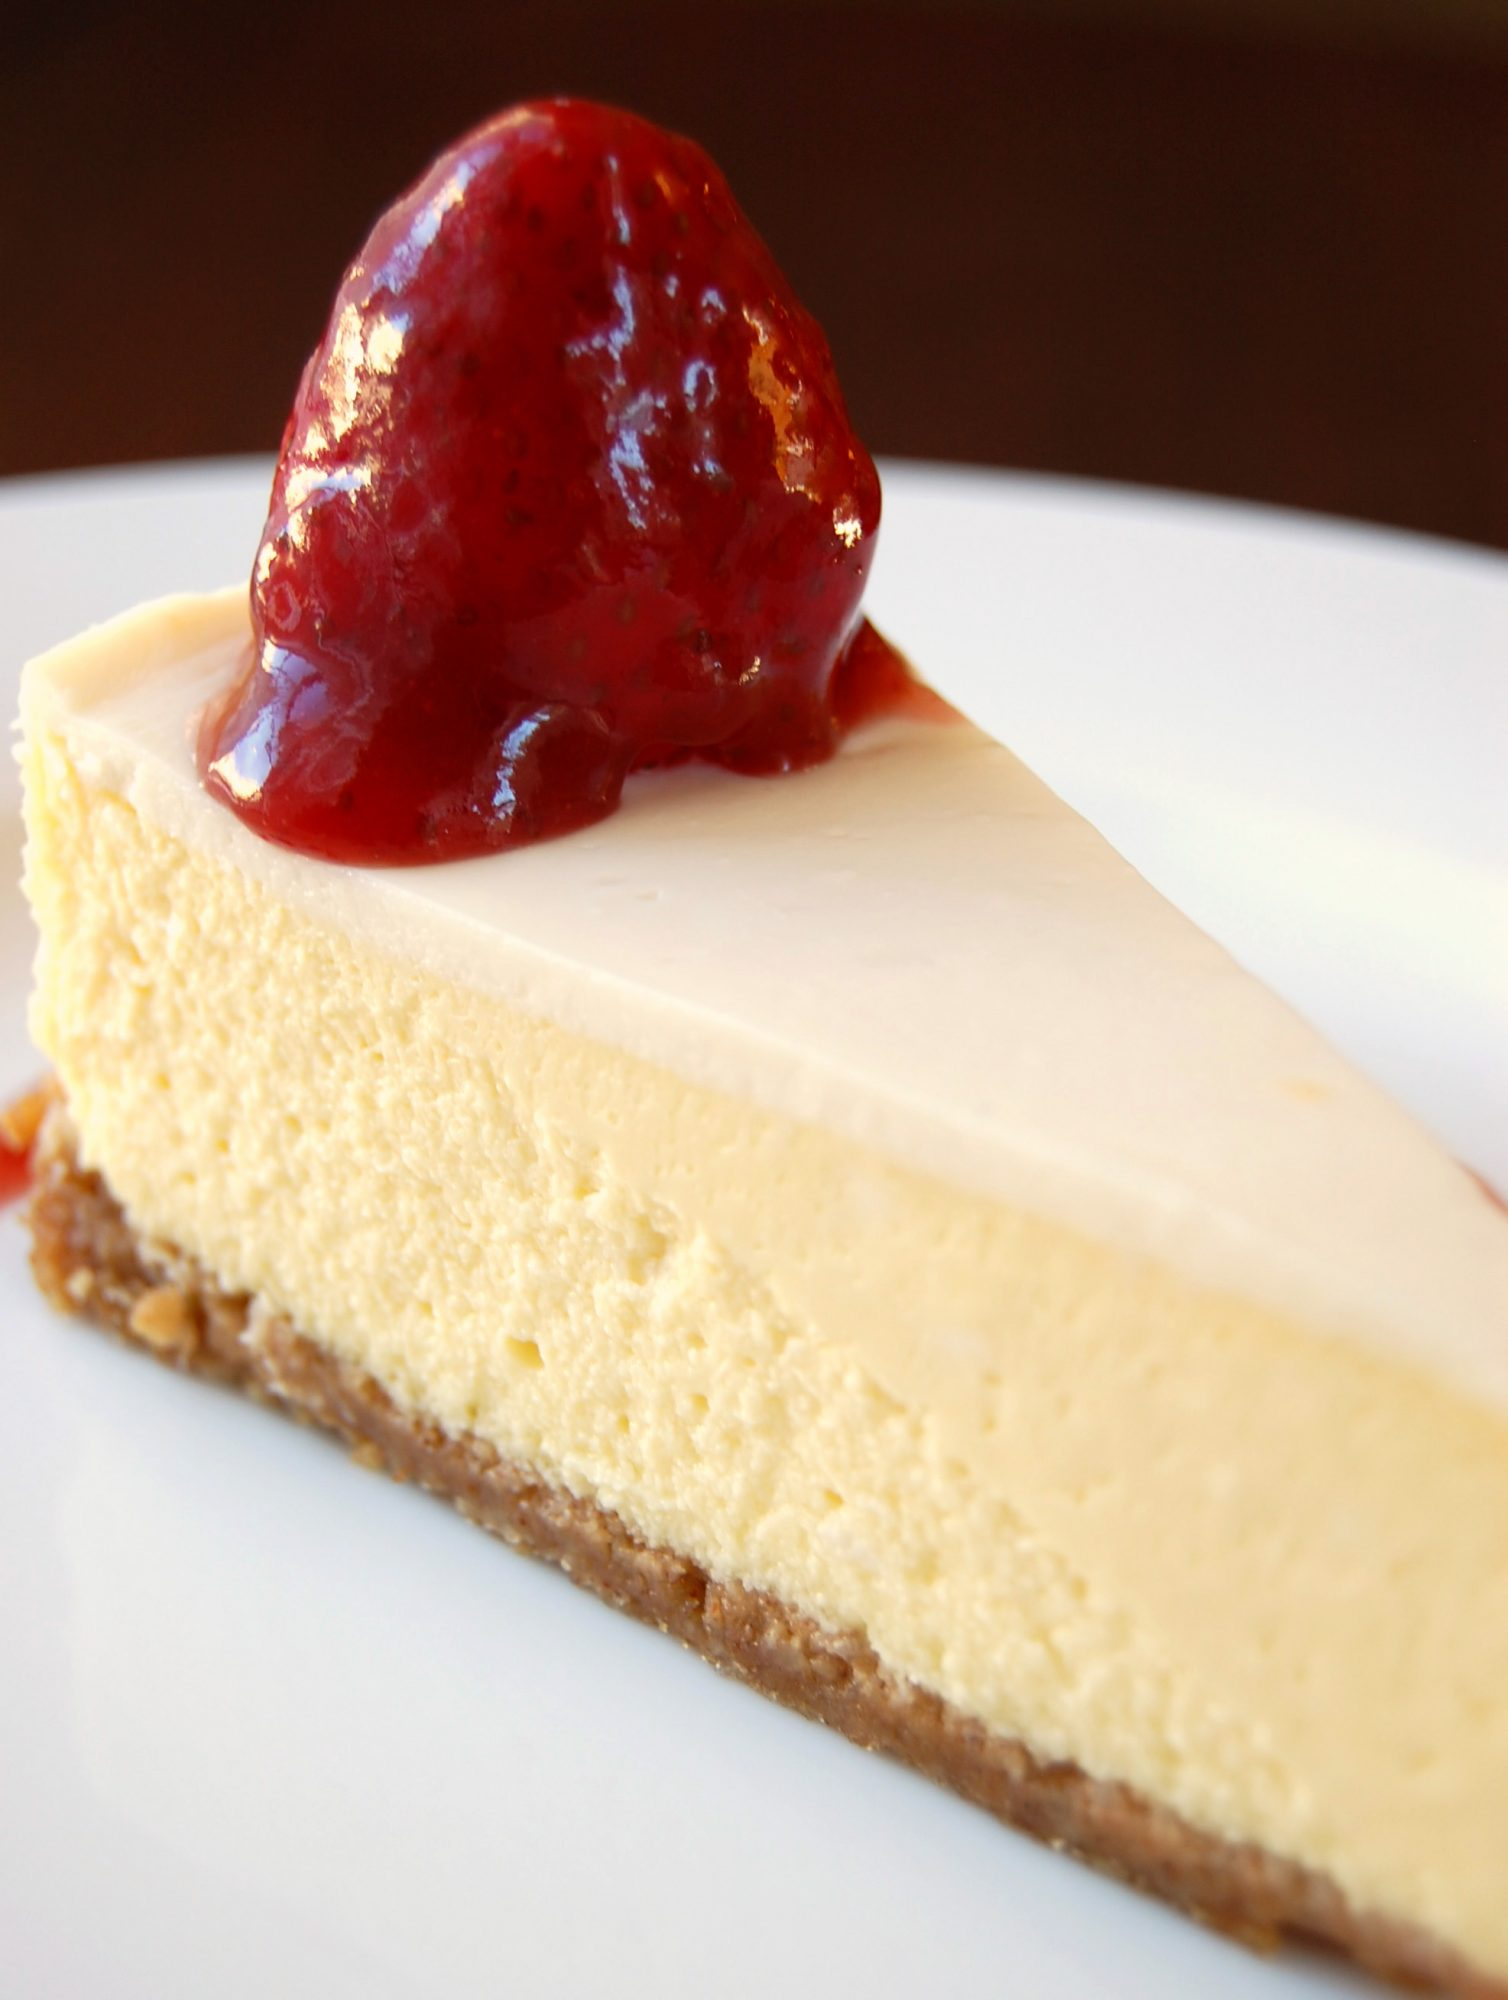 a closeup of a slice of sour cream-topped cheesecake with a fresh strawberry and glaze